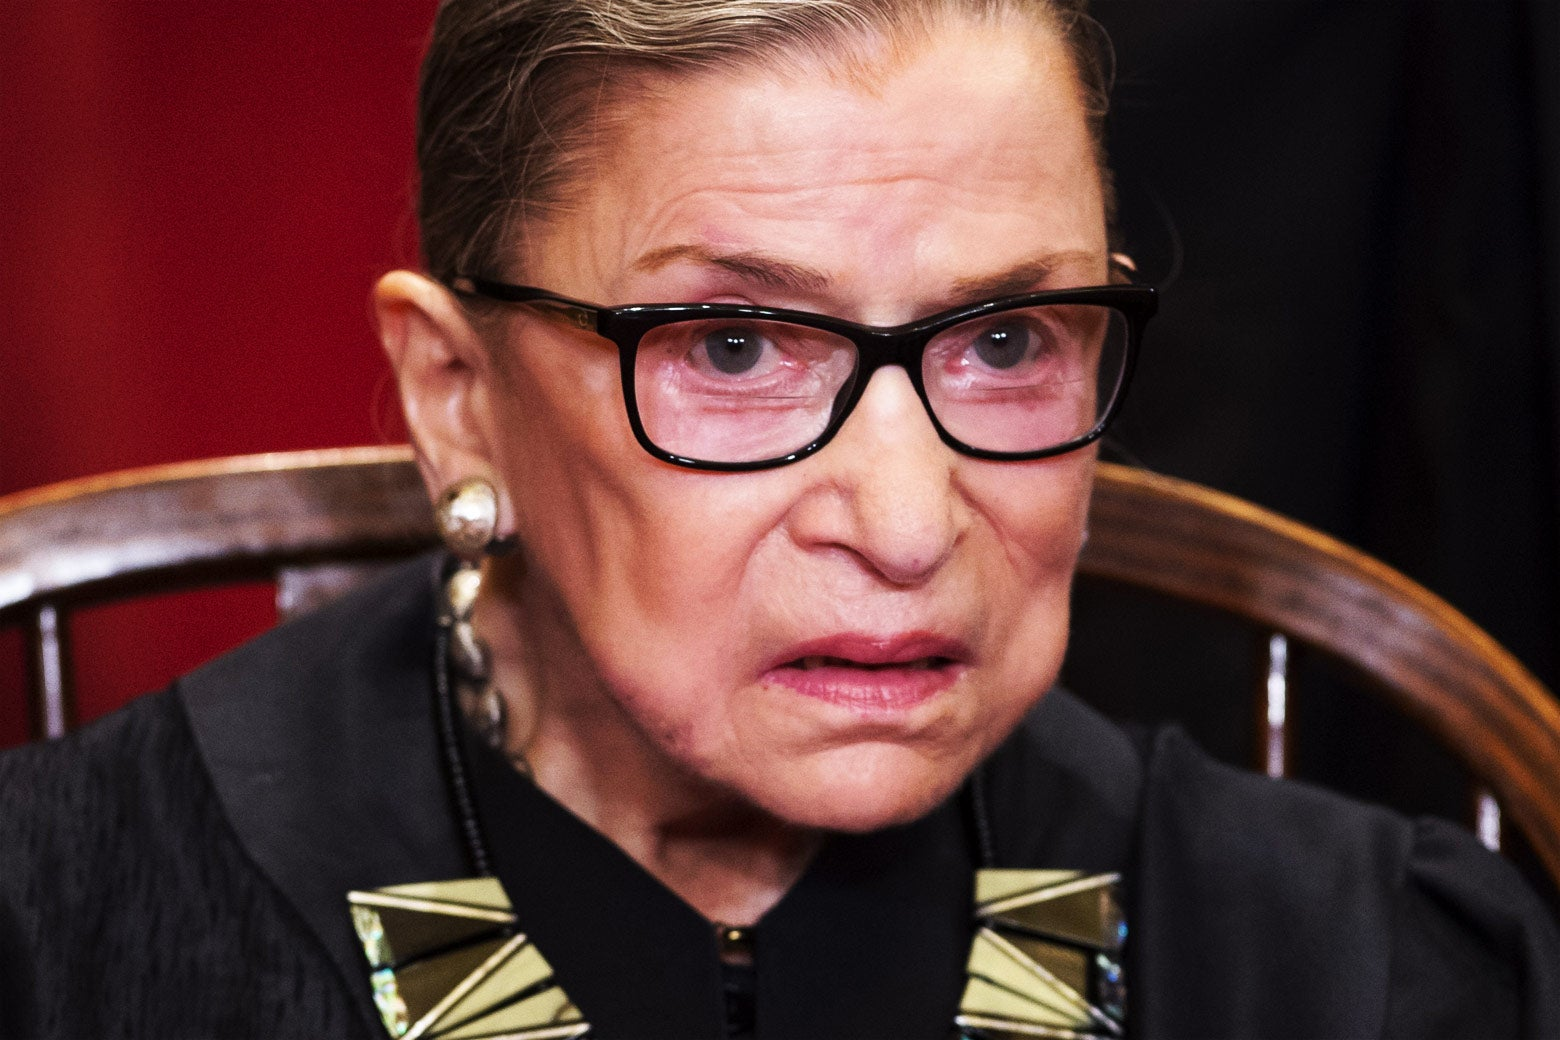 Supreme Court Associate Justice Ruth Bader Ginsburg sits for an official photo on June 1. Photo by Saul Loeb/AFP/Getty Images.